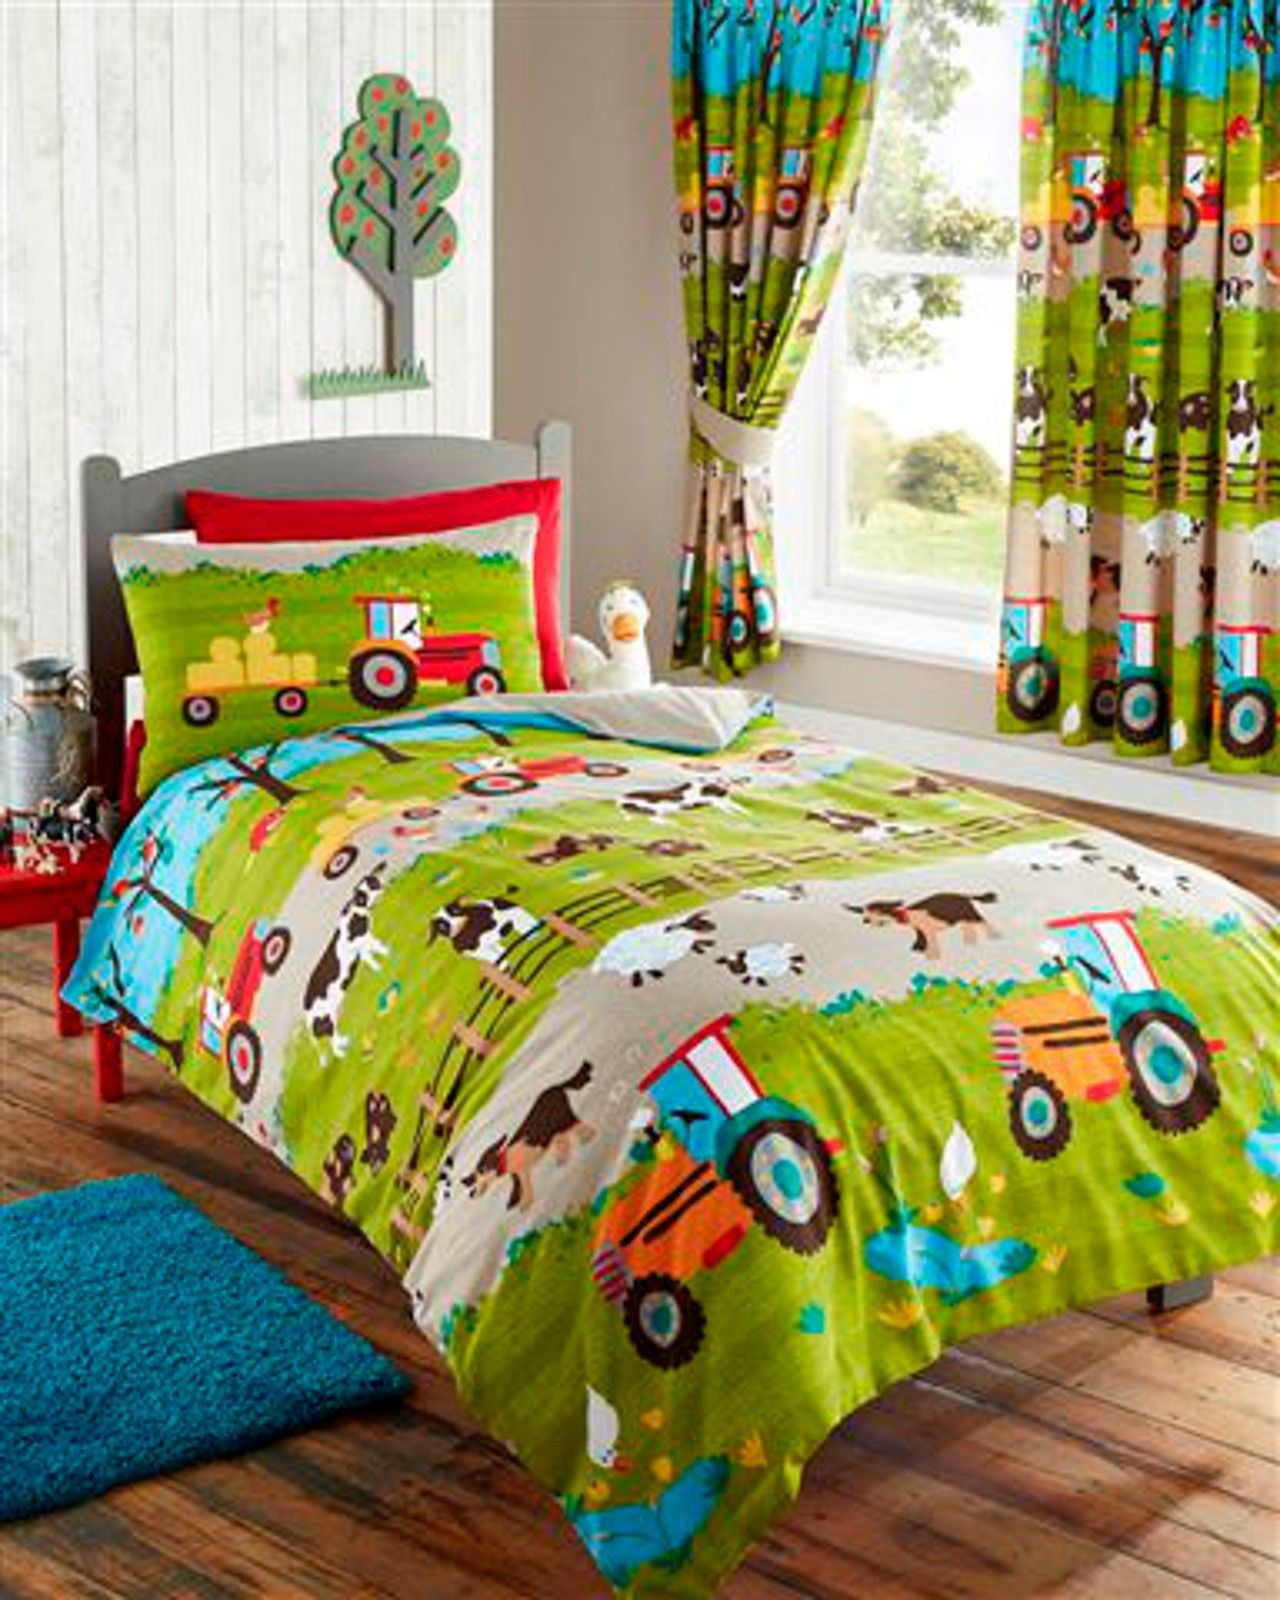 Kids Bedroom Linen farm animals tractor kids duvet cover or matching curtains bedding